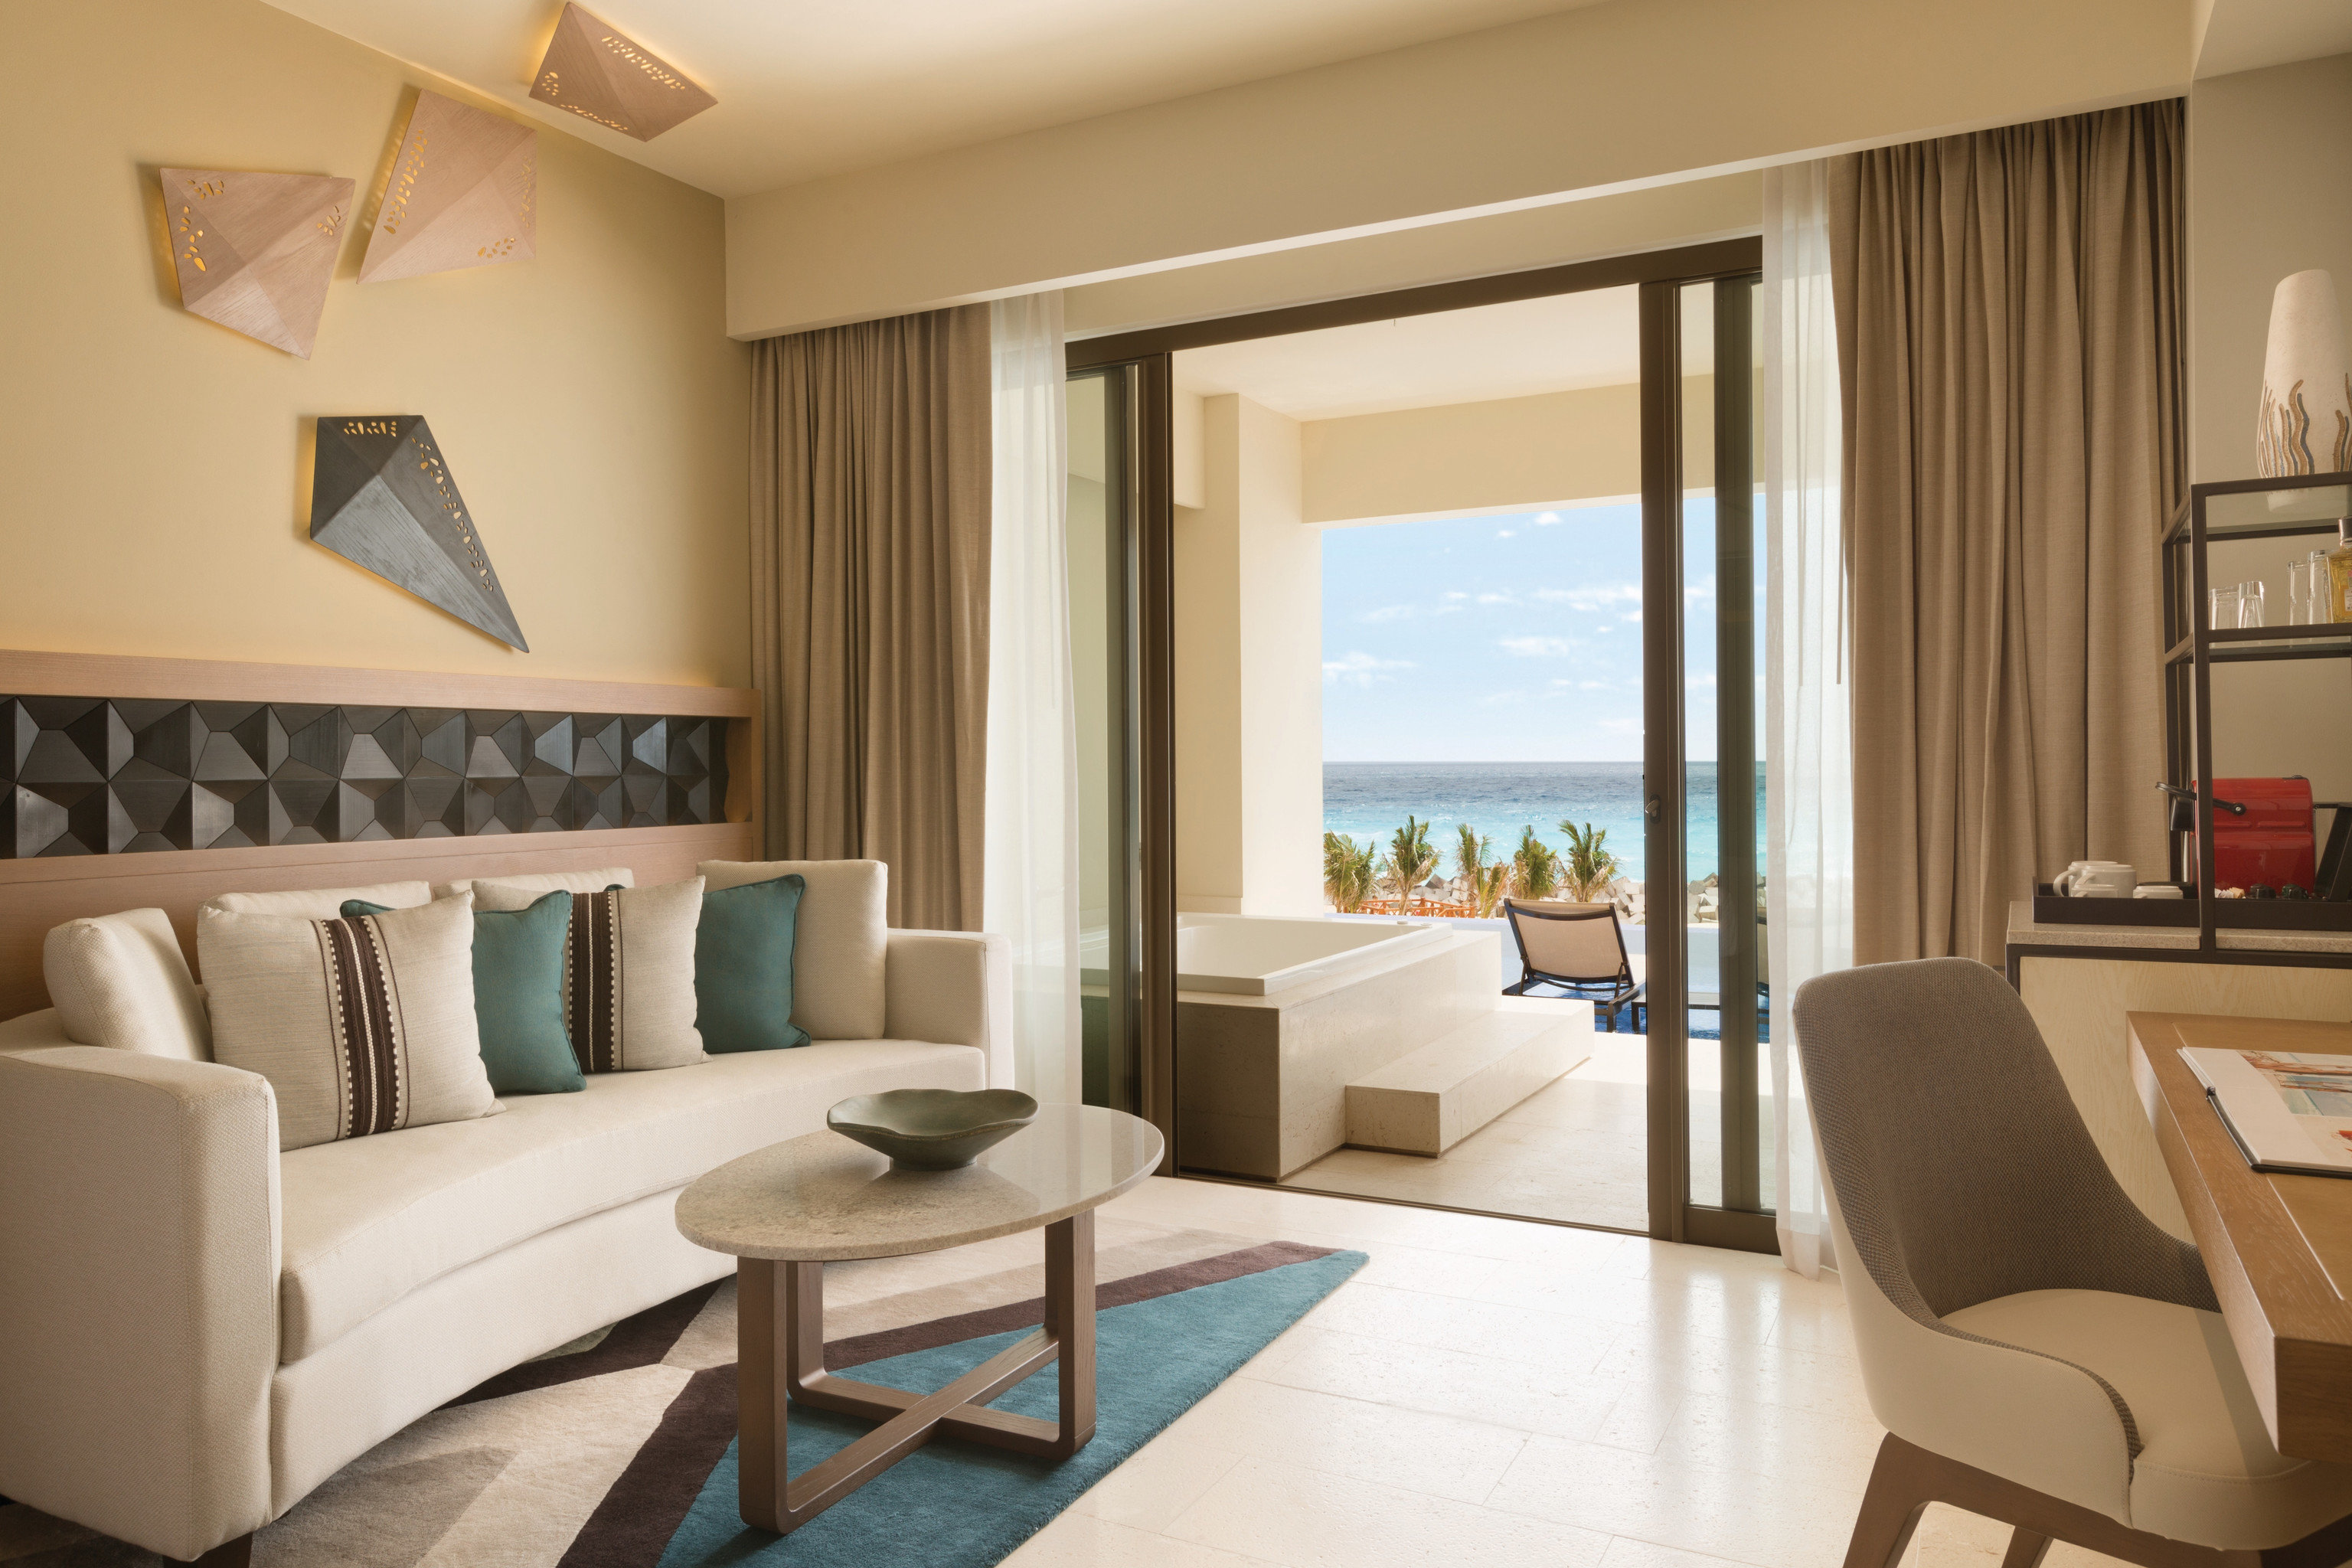 News Trip Ideas indoor floor room wall window sofa Living chair living room ceiling property furniture condominium hotel home Suite estate interior design real estate Design window covering Bedroom cottage apartment area Modern leather